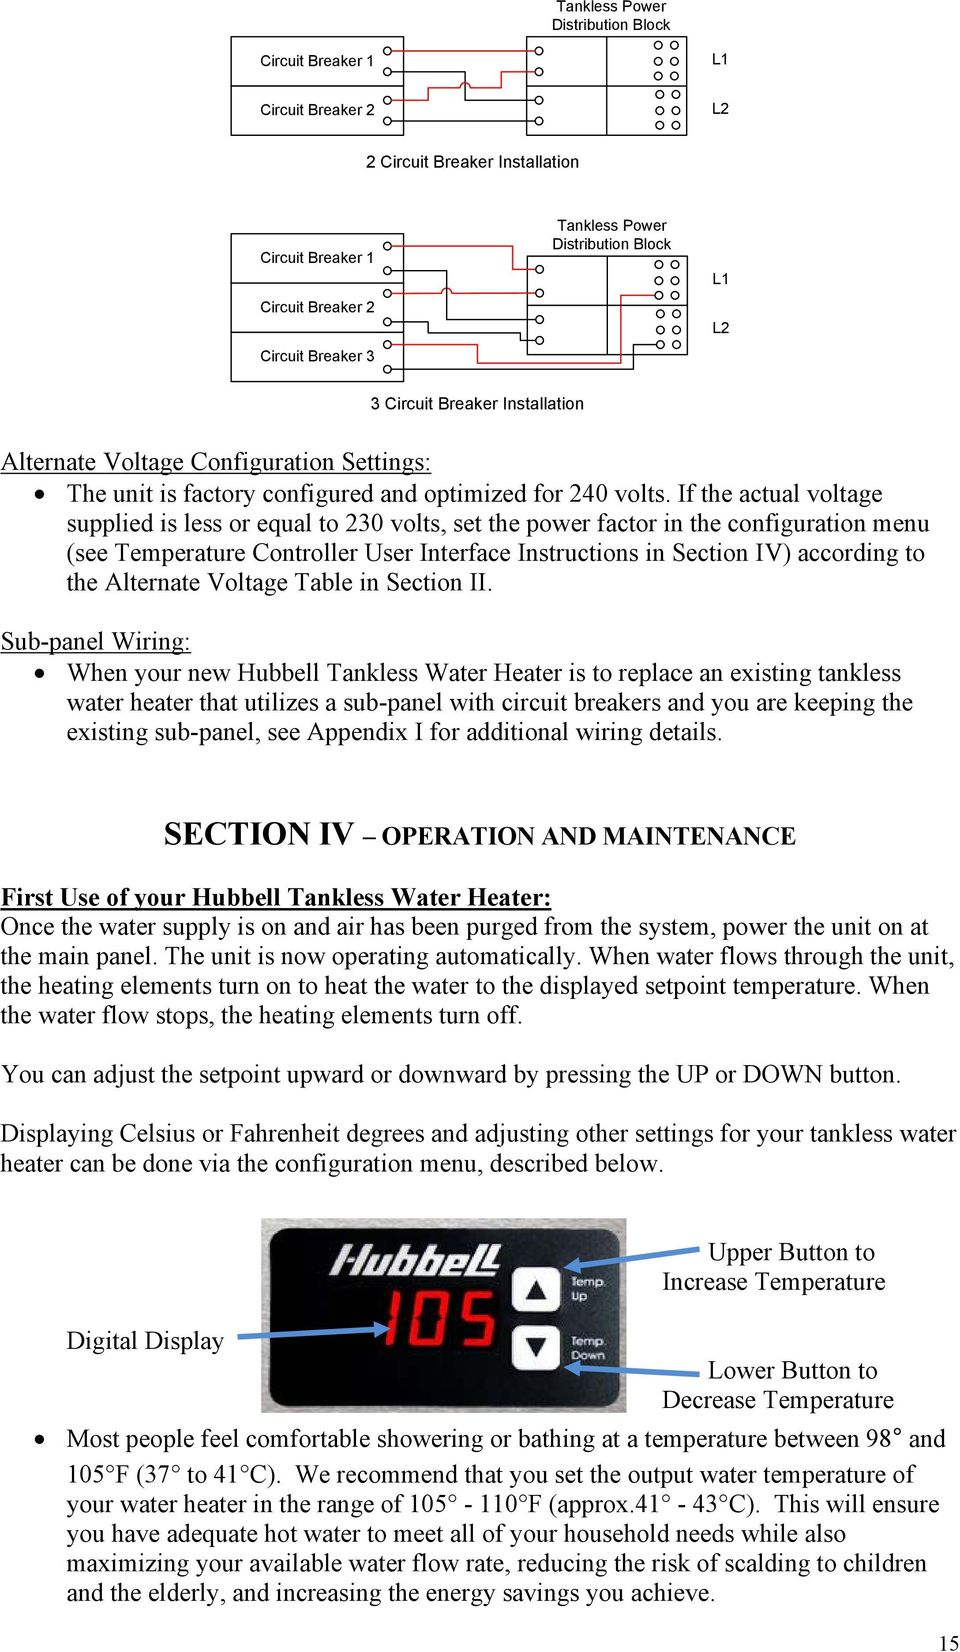 Installation Operation And Maintenance Manual For The Hubbell Heating Element Circuit If Actual Voltage Supplied Is Less Or Equal To 230 Volts Set Power